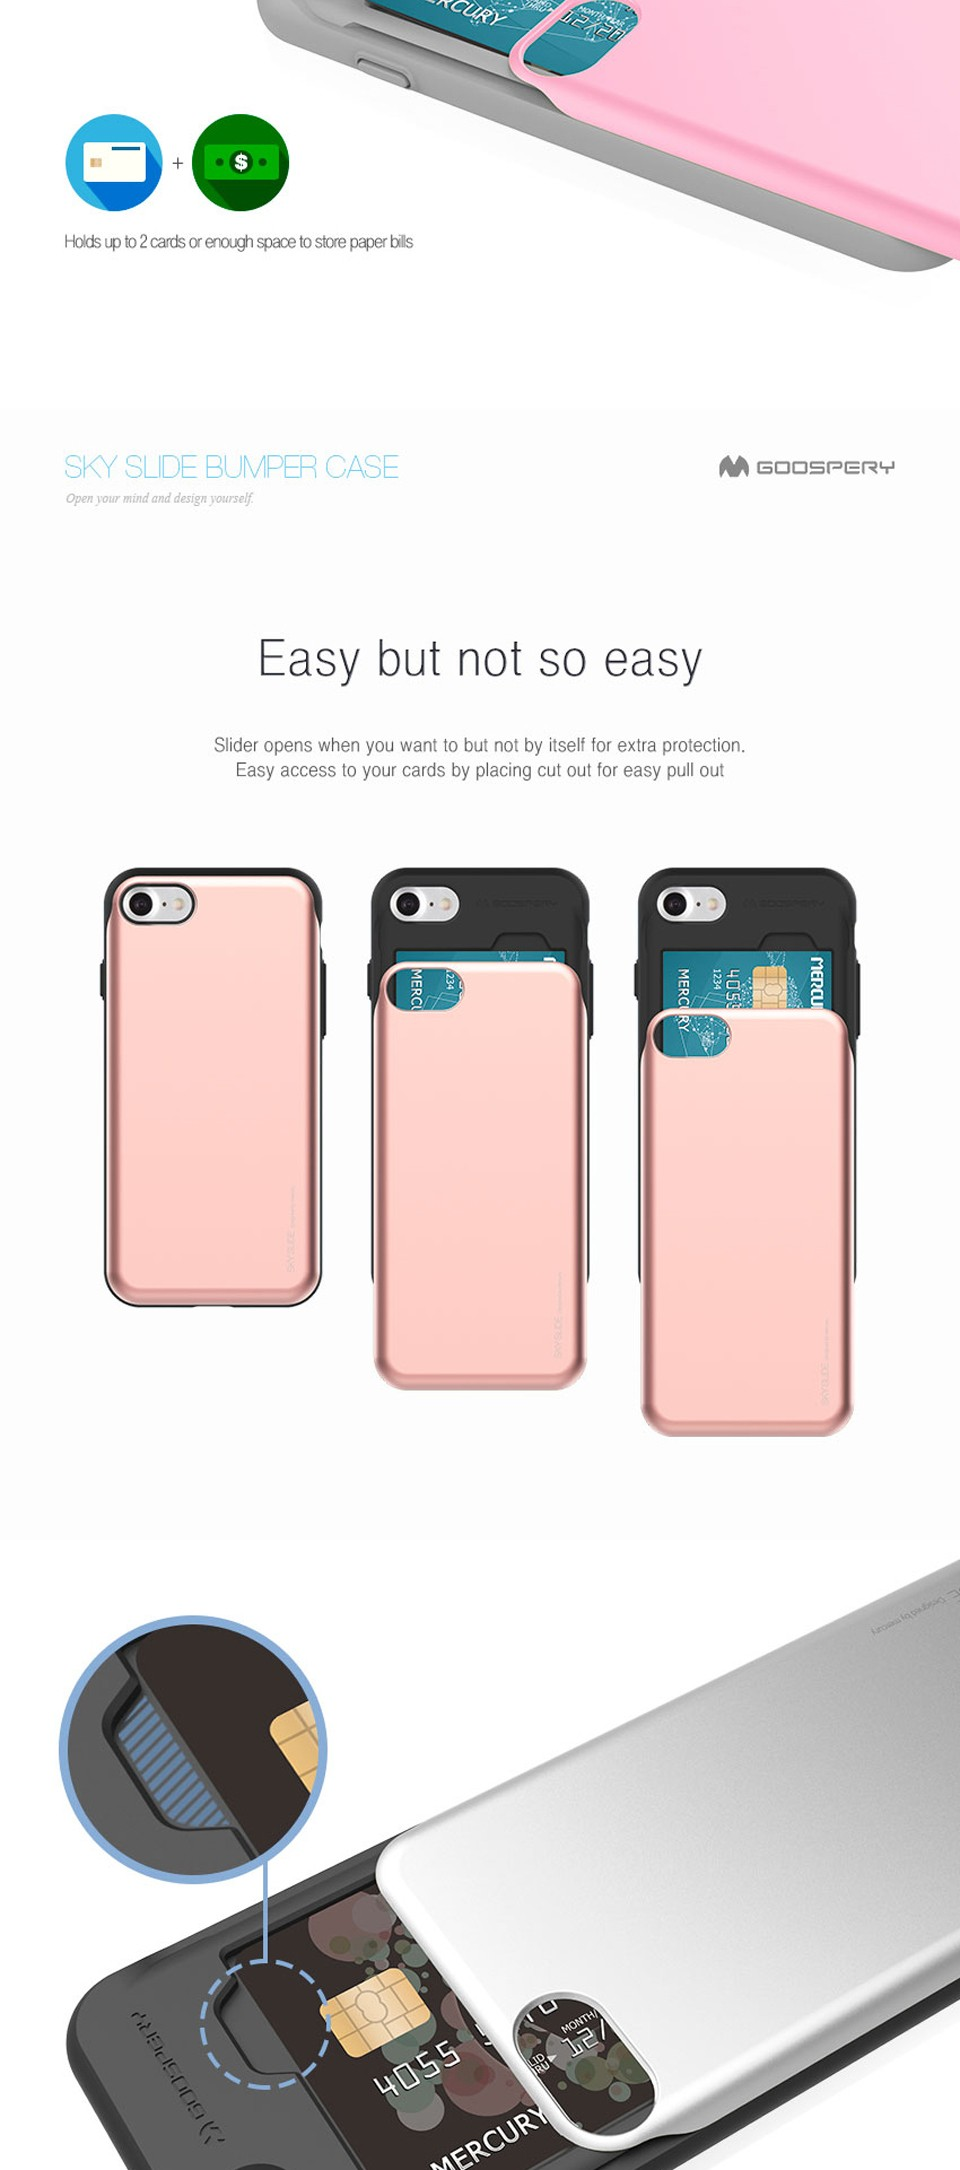 Noriginal Brand Card Wallet Phone Case For Iphone 6 6s 7 Plus Goospery Sky Slide Bumper Black Ip7 Detail Eng 01 02 03 04 05